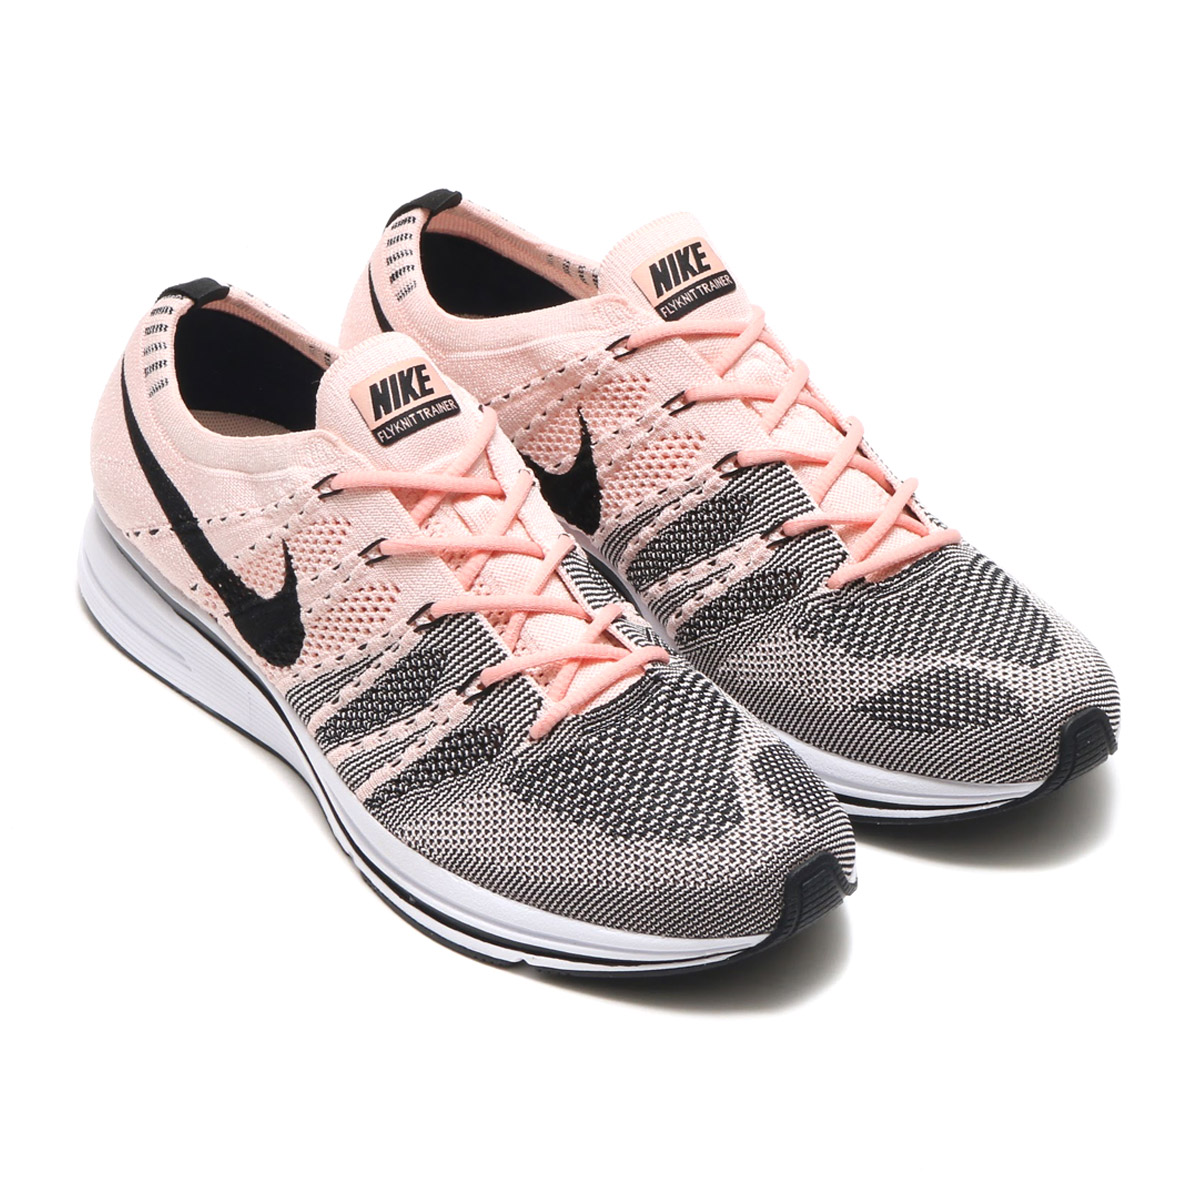 f8400ec6ad3c atmos pink  NIKE FLYKNIT TRAINER (Nike fried food knit trainer ...